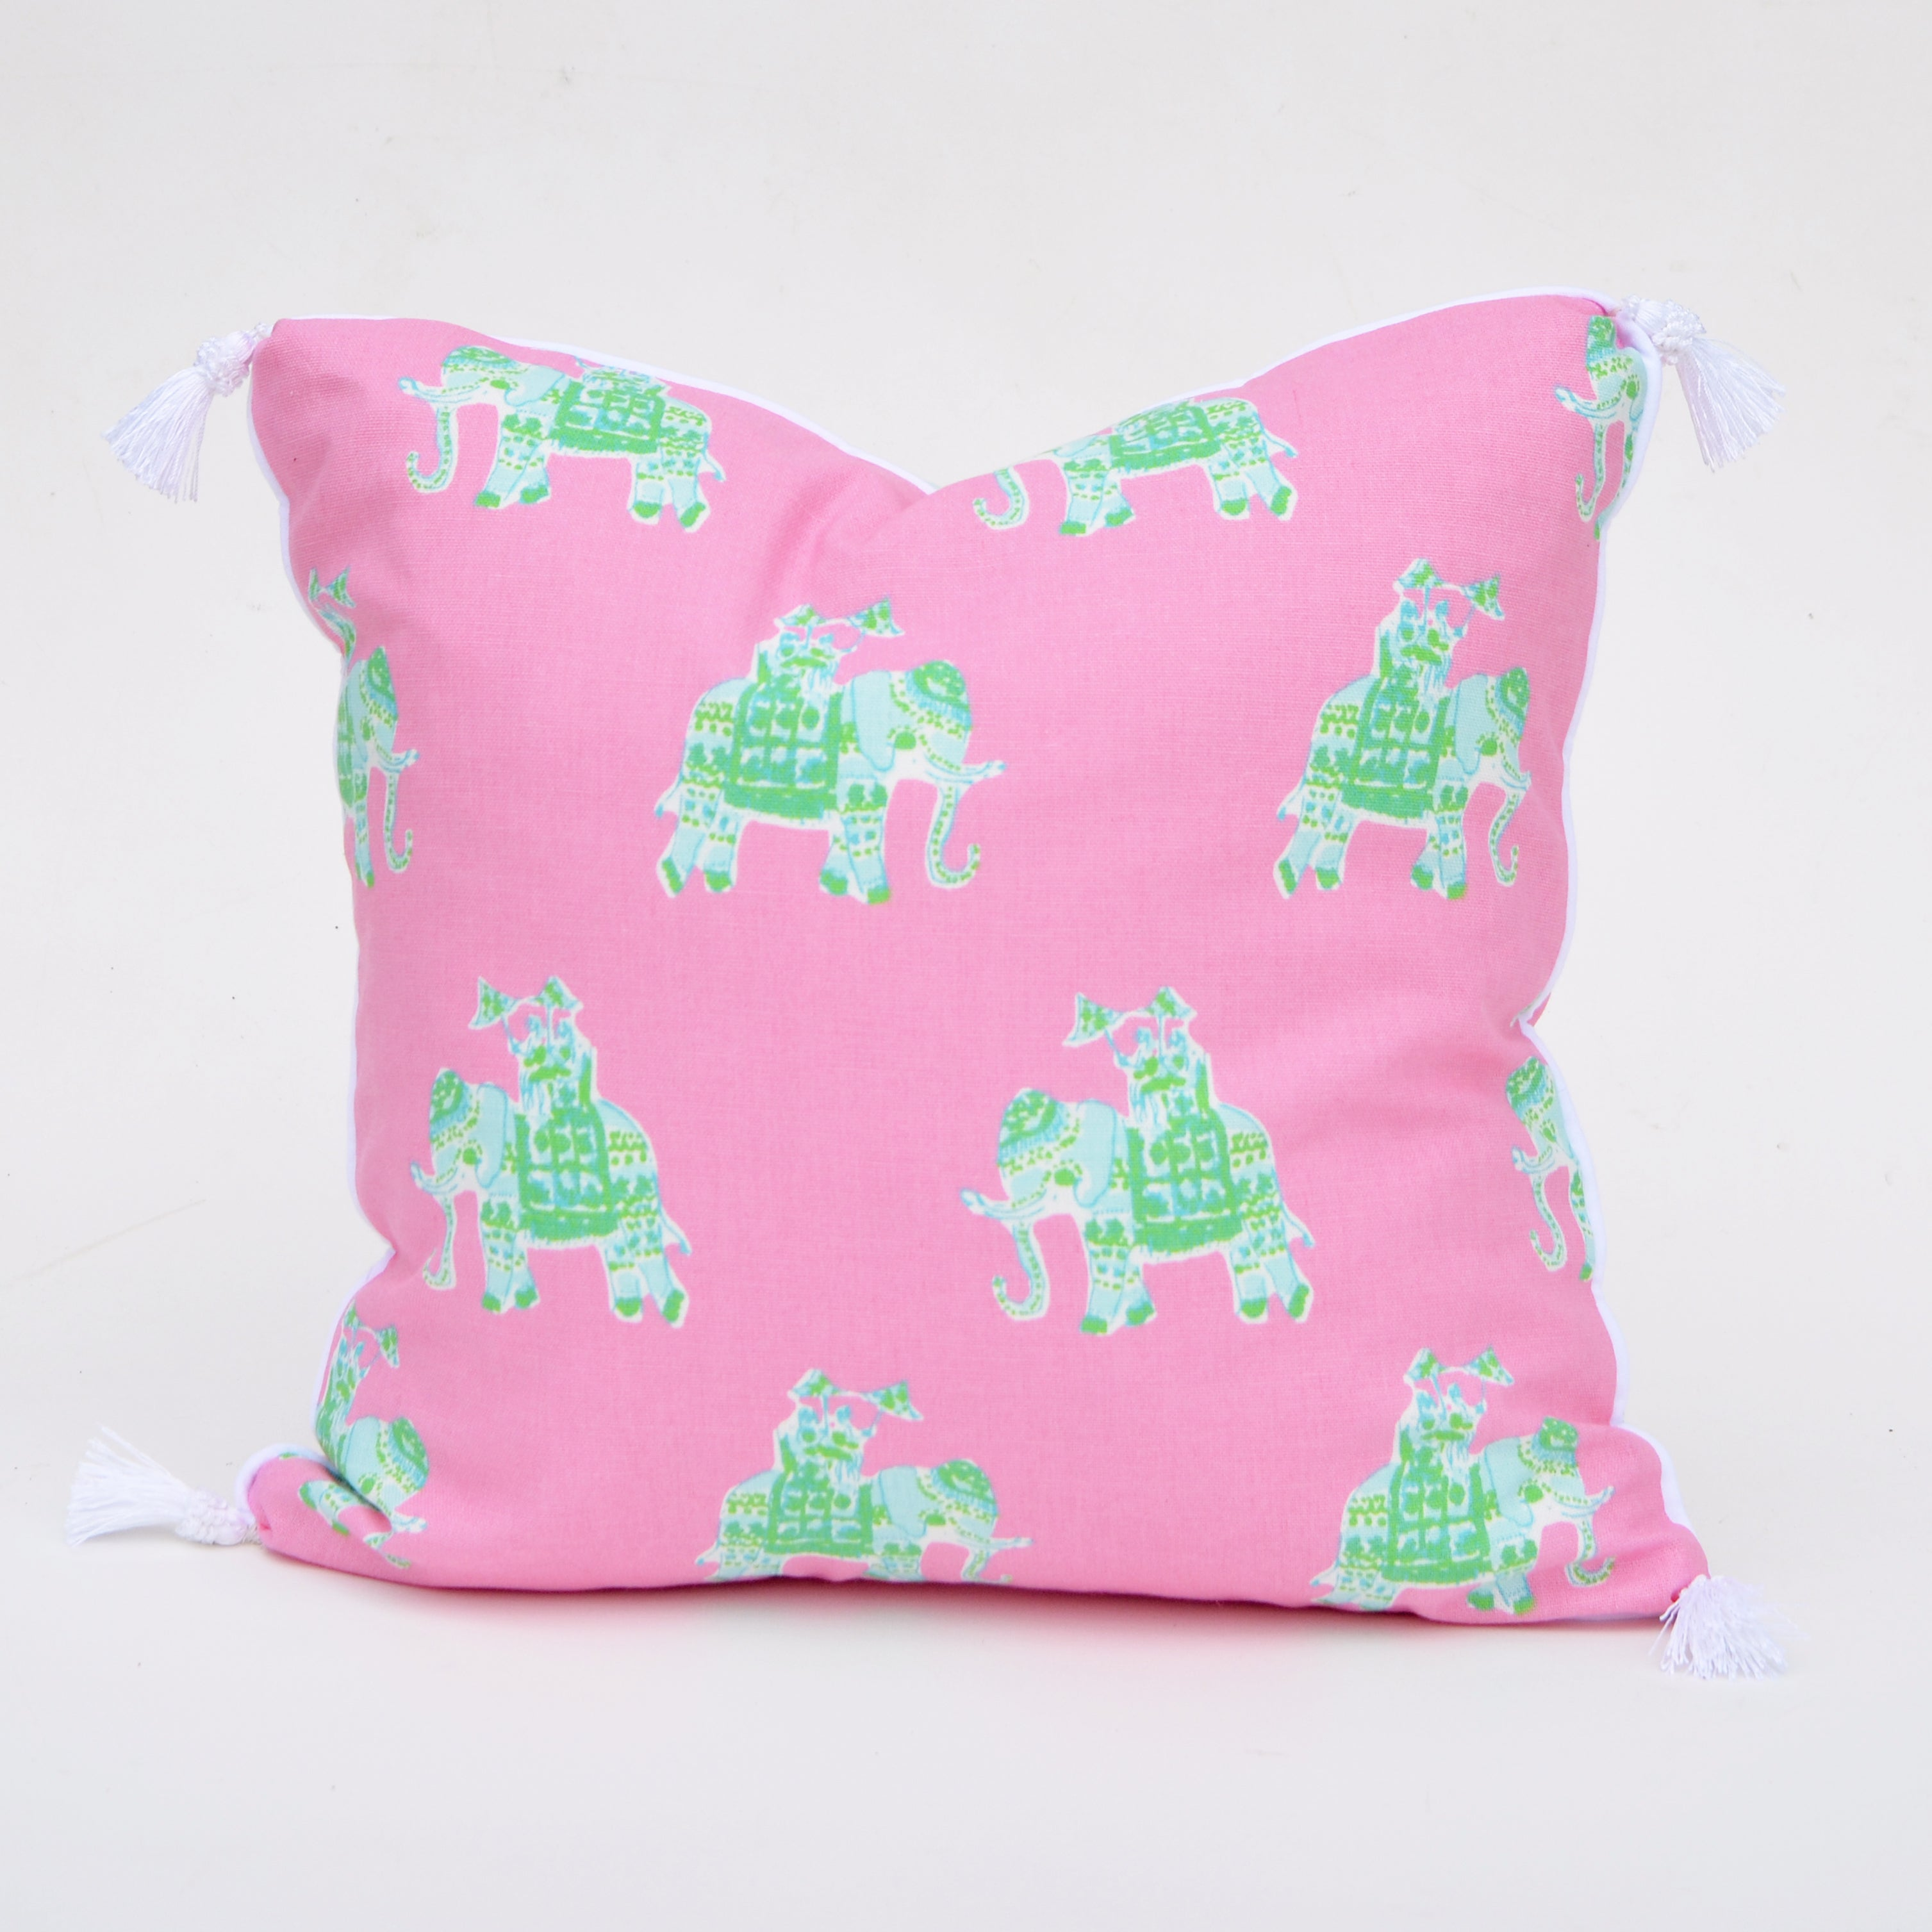 Lilly Pulitzer Bazaar Tiki Pink Elephant Pillow Cover Elizabeth